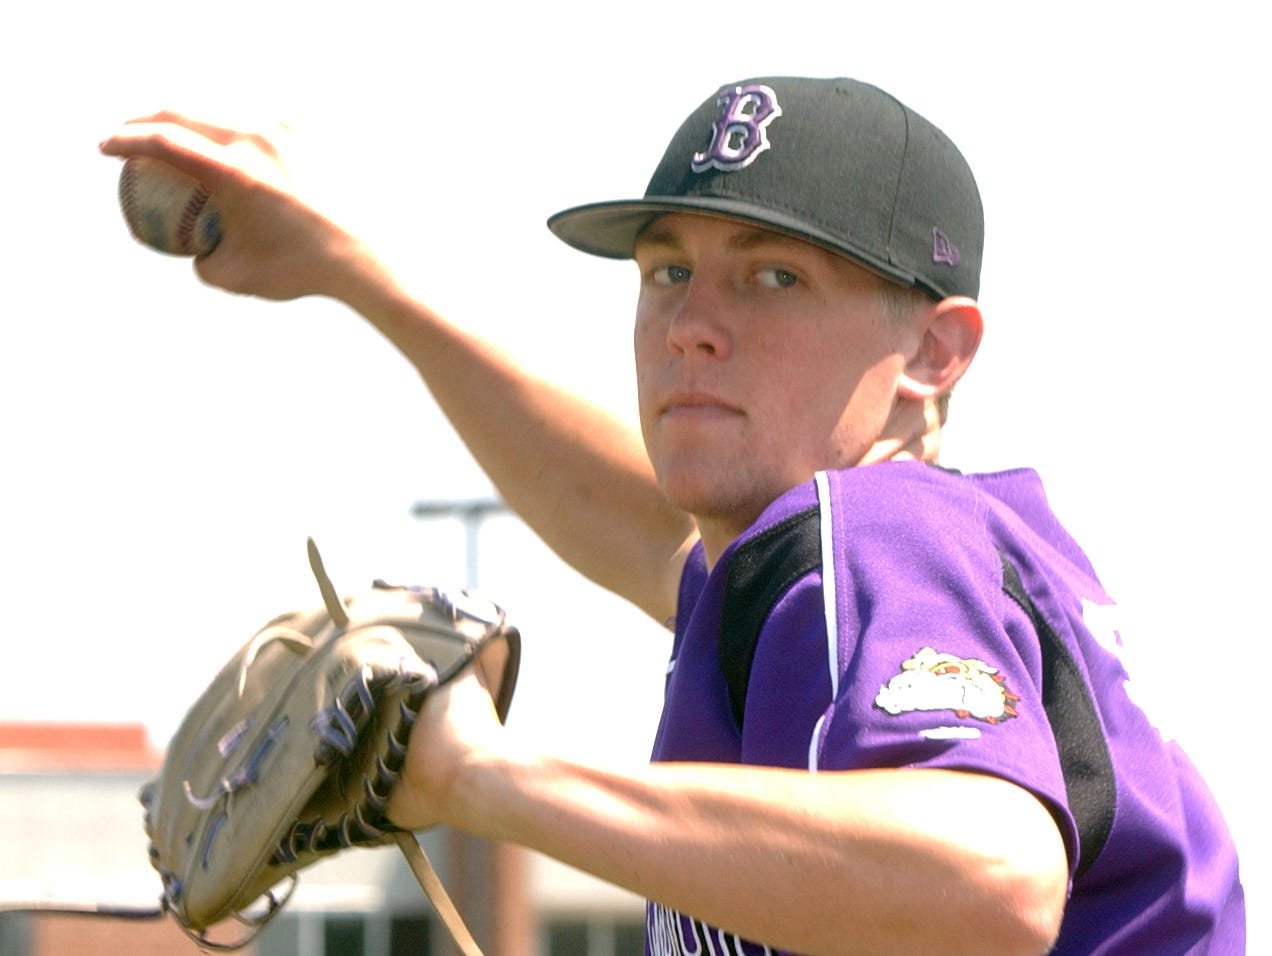 Brownsburg High School baseball pitcher Drew Storen (cq/gm) is the All-West Baseball Player of the Year. Photo taken 6/12/07. (Gary Moore/The INdianapolis Star)